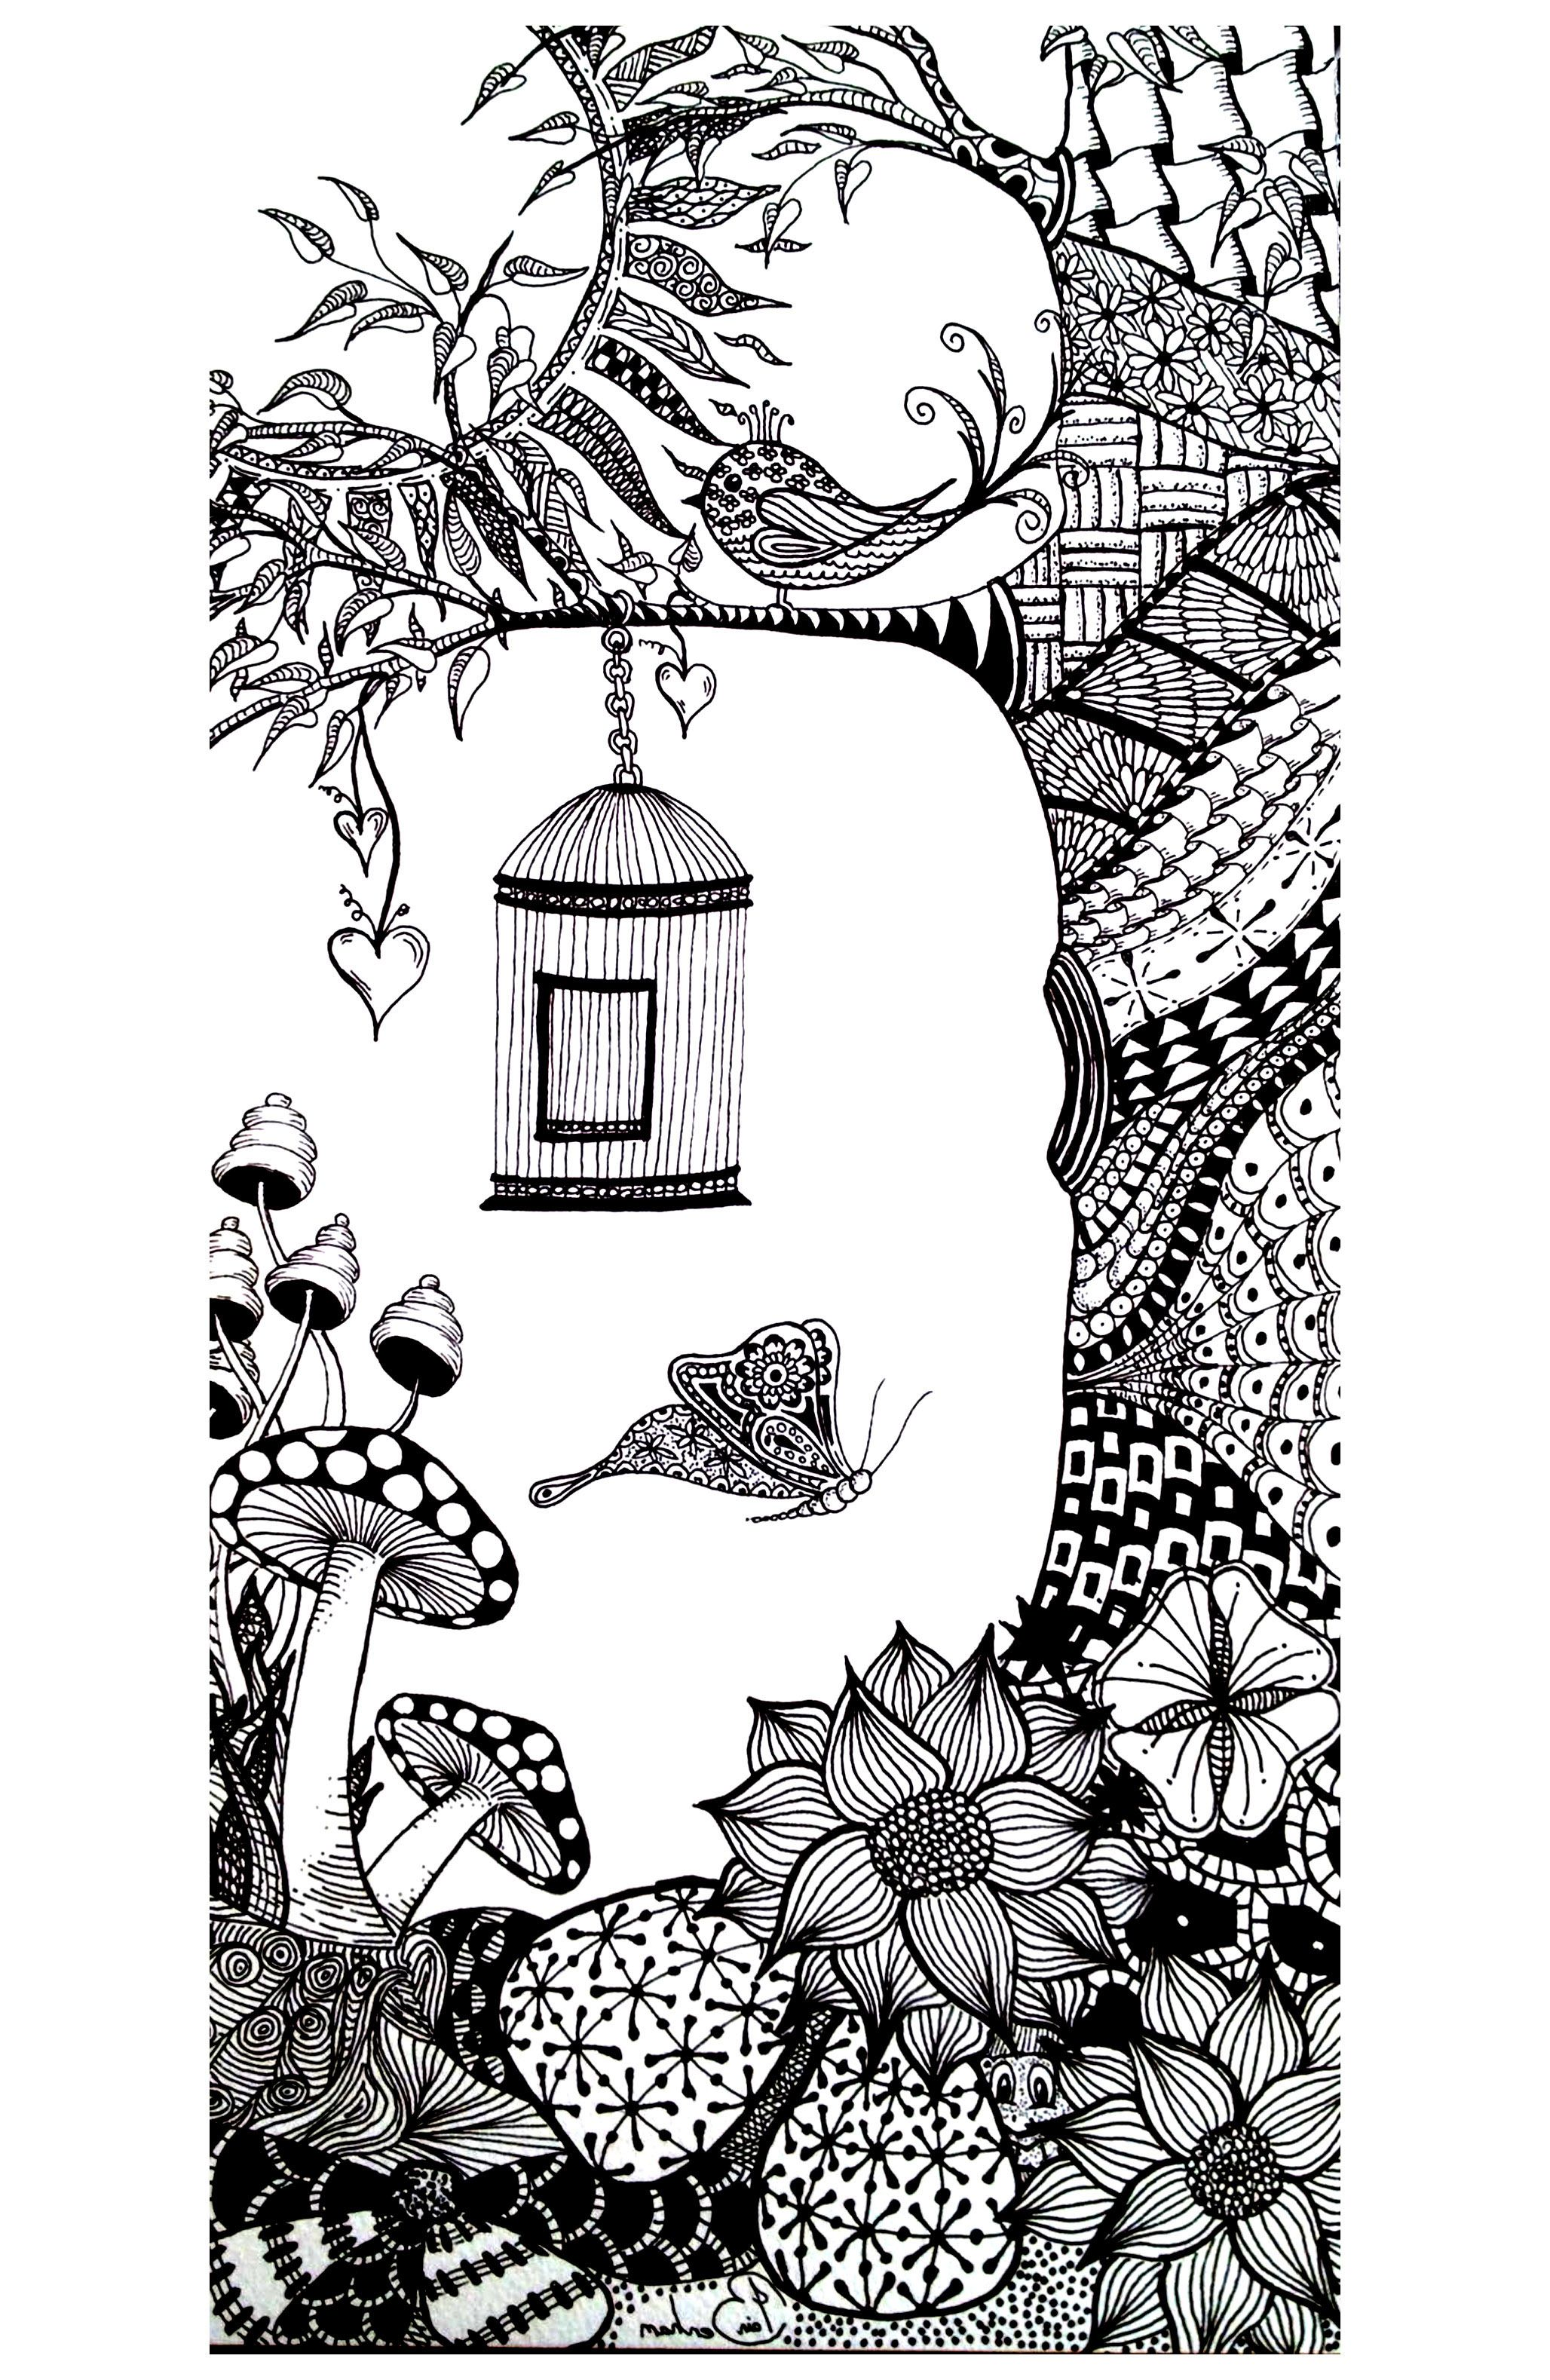 Free coloring page coloring-adult-animals-bird-butterfly. Coloring page with a butterfly and a bird, in a wonderfull surroundings